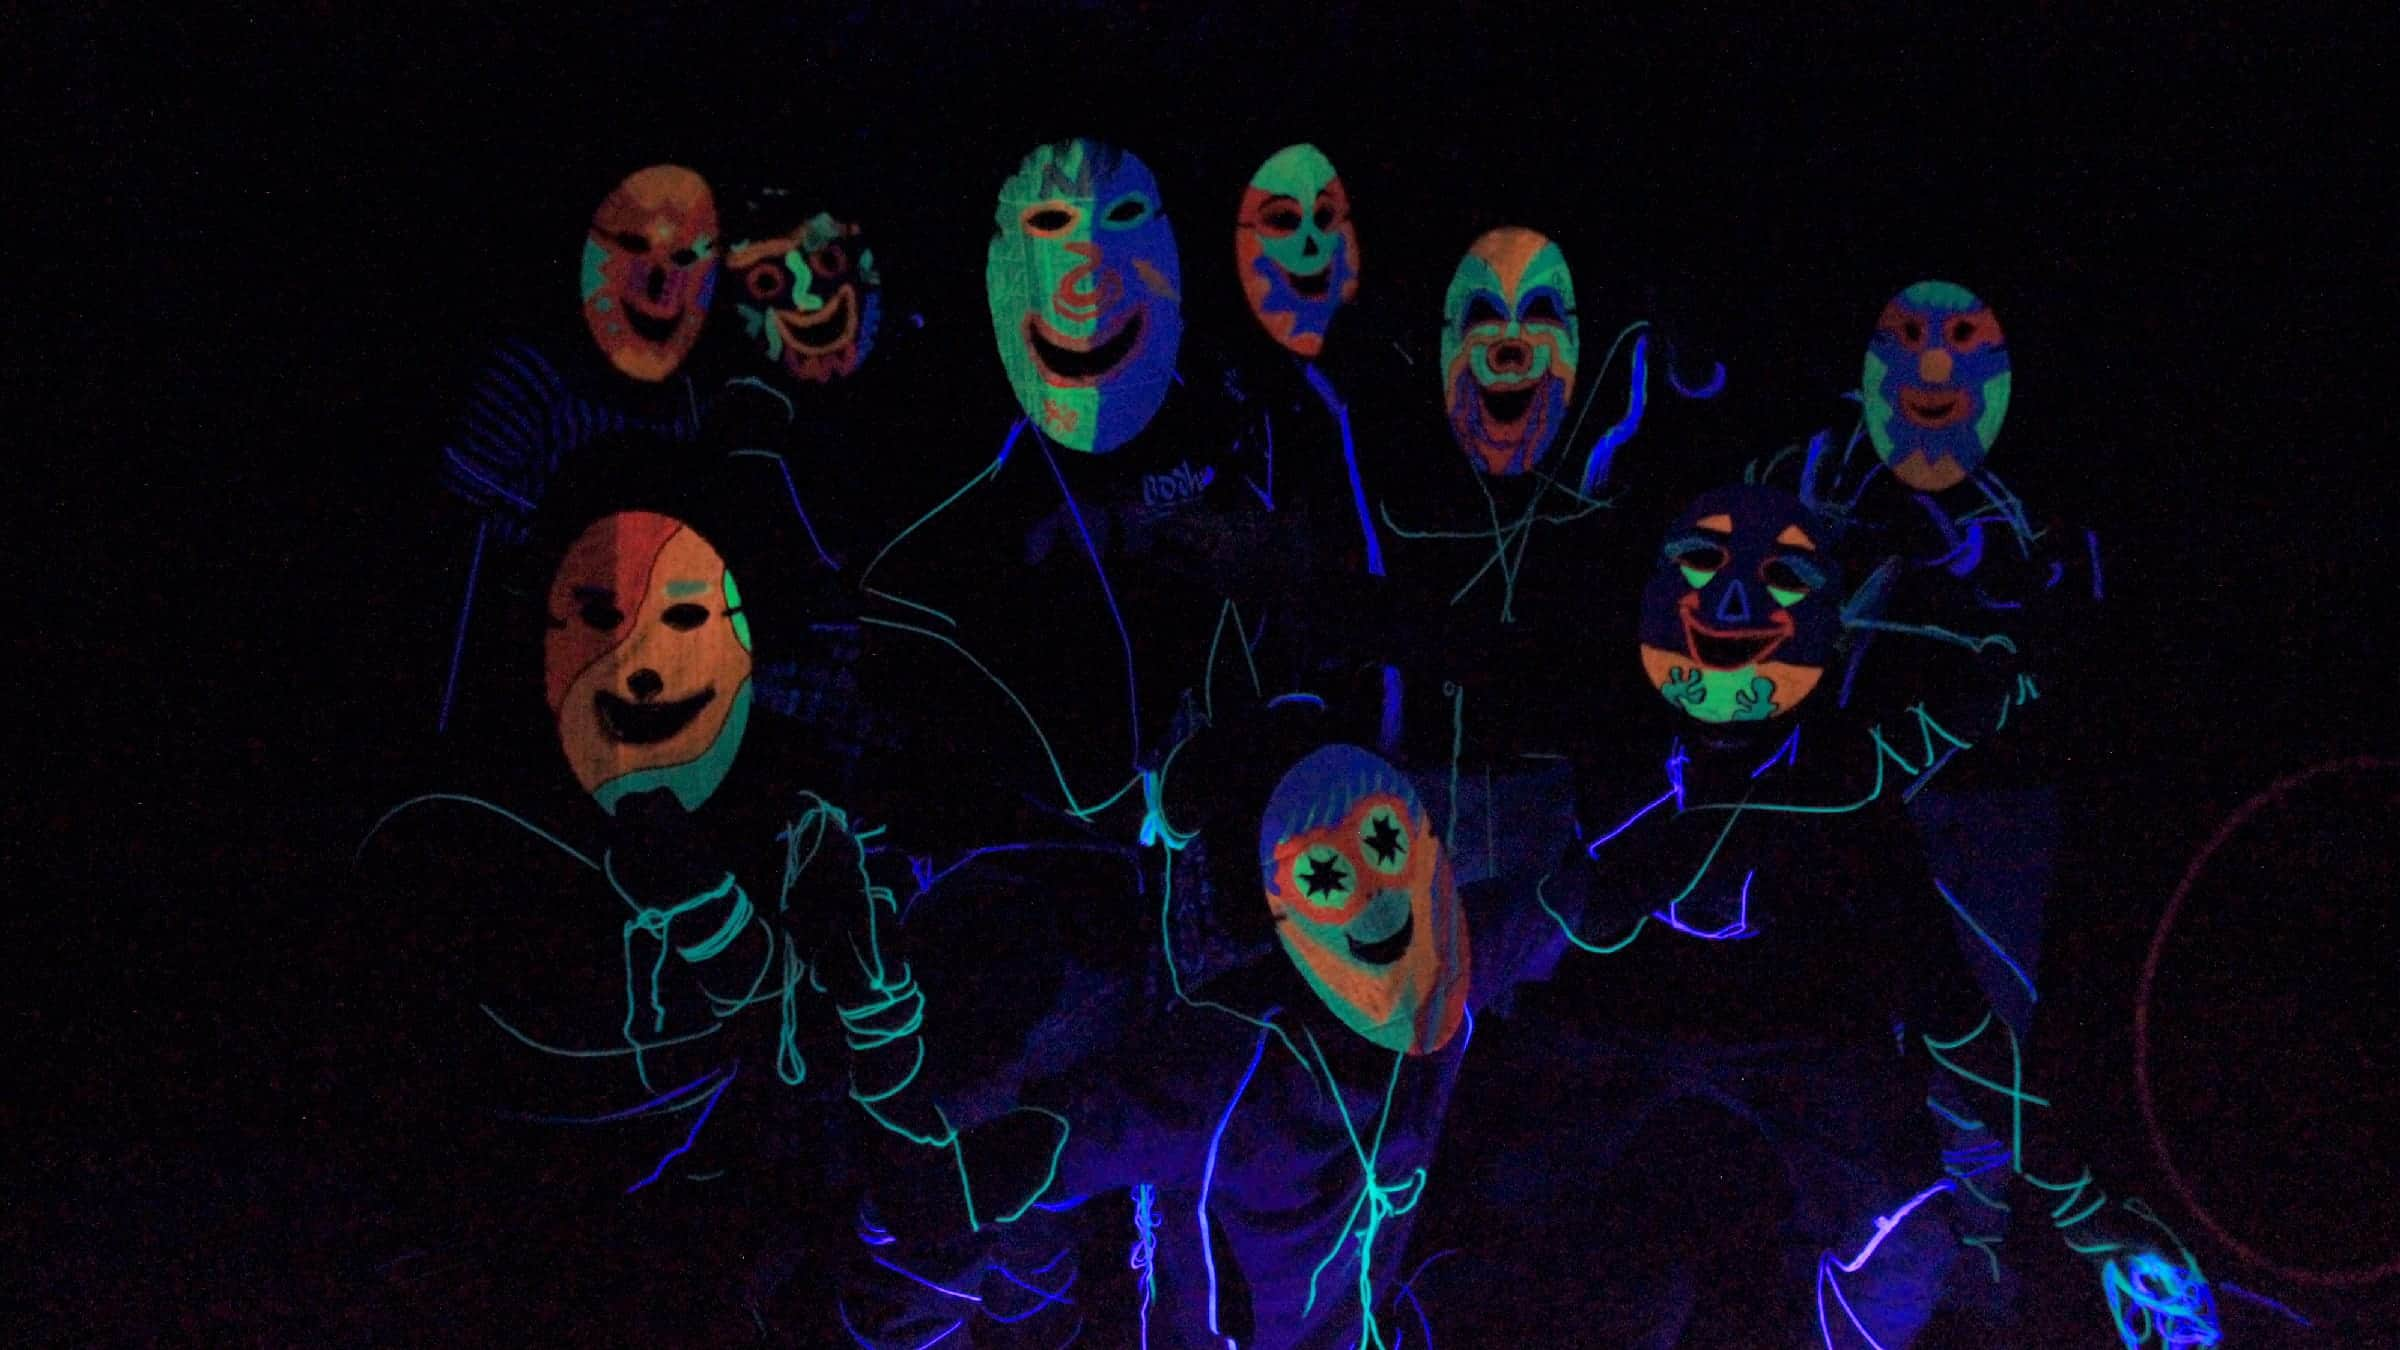 Funky neon party with masks